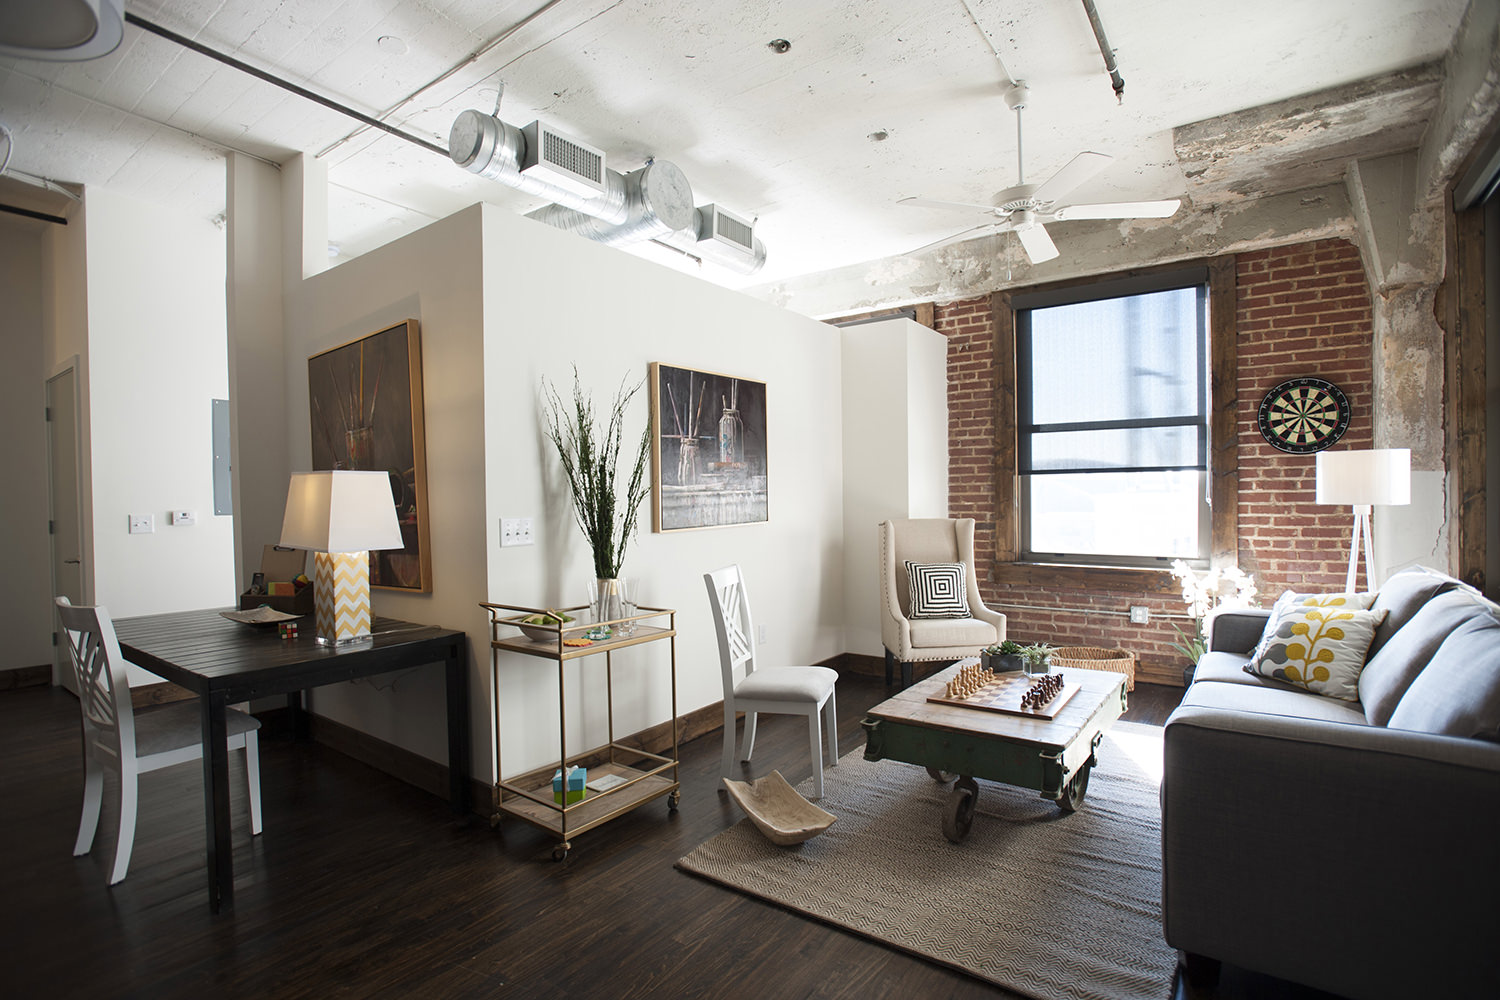 Pressbox Lofts Downtown Memphis, Tennessee - Historic Redevelopment Renovation - 4.jpg